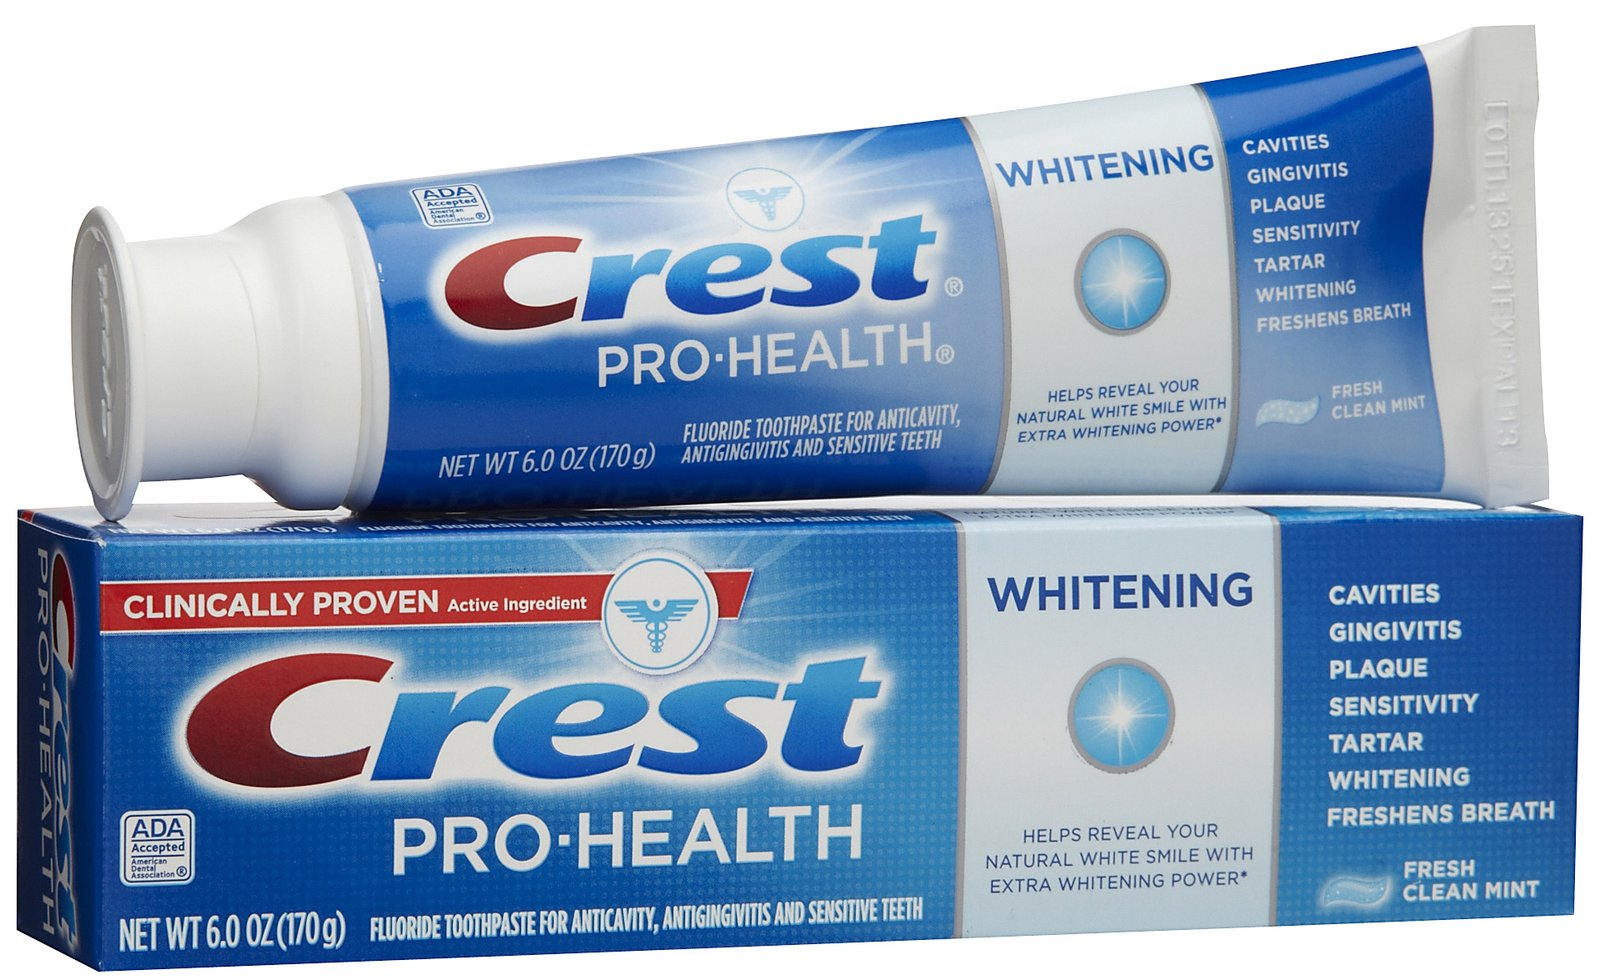 free crest pro-health toothpaste  u0026 scrubbing bubbles products at cvs